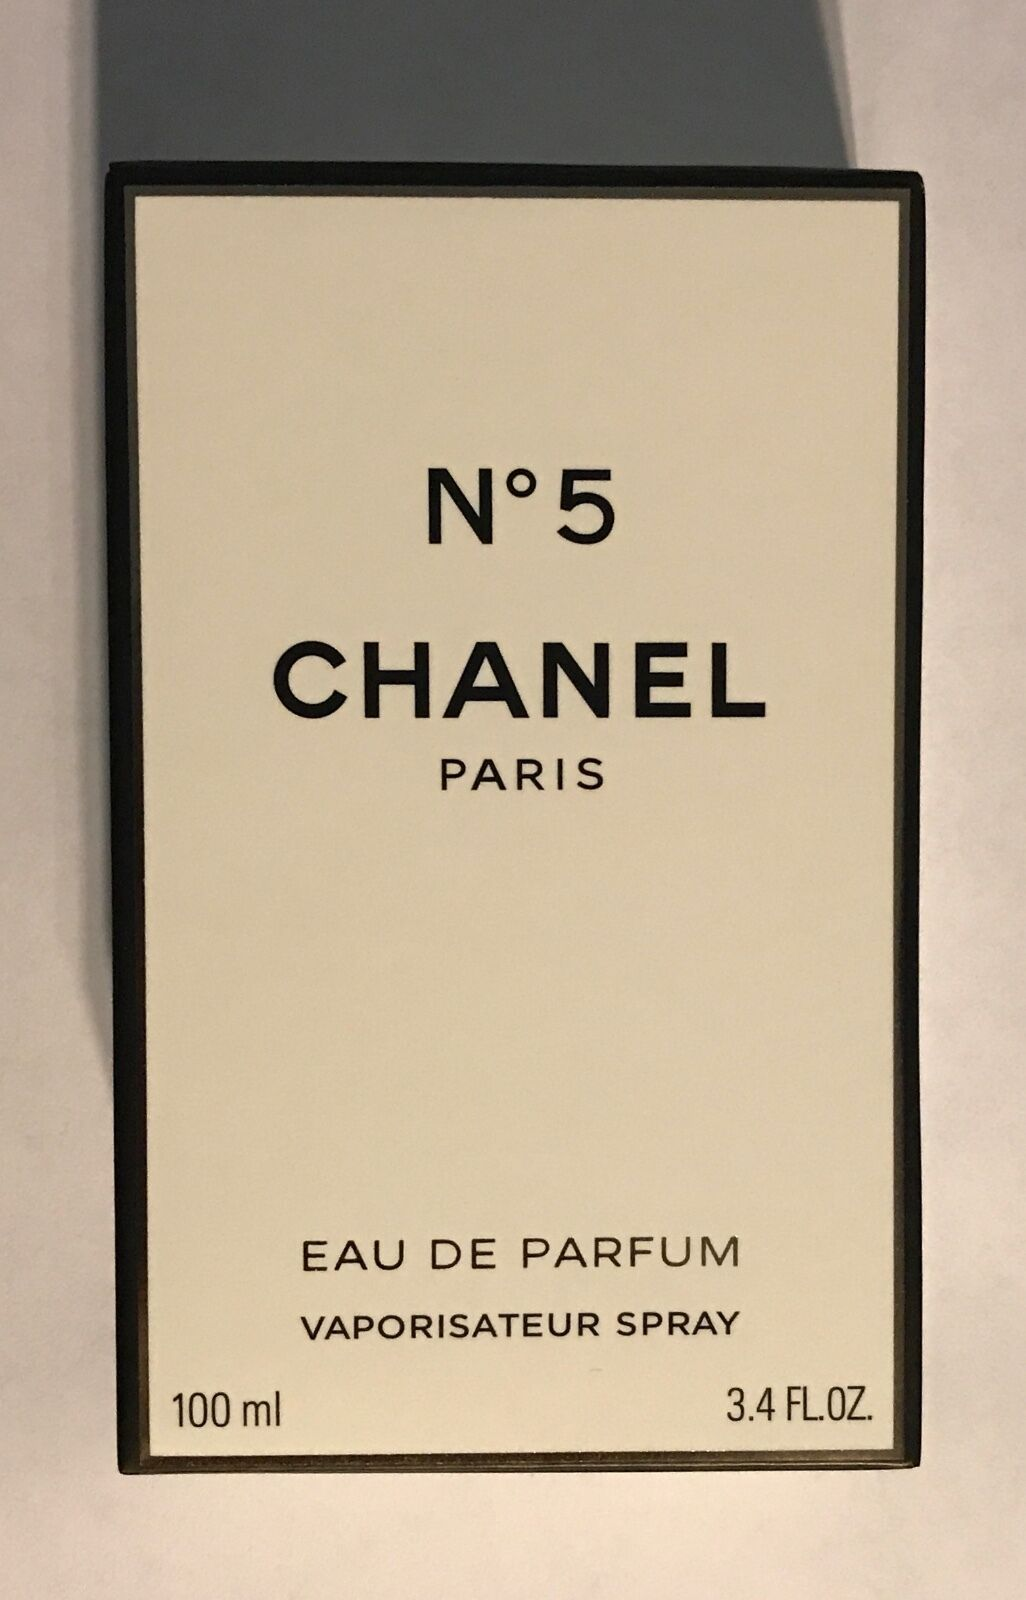 Chanel No 5 34oz Womens Eau De Perfum Edp Factory Sealed Women 100ml 1 Of 6only 4 Available